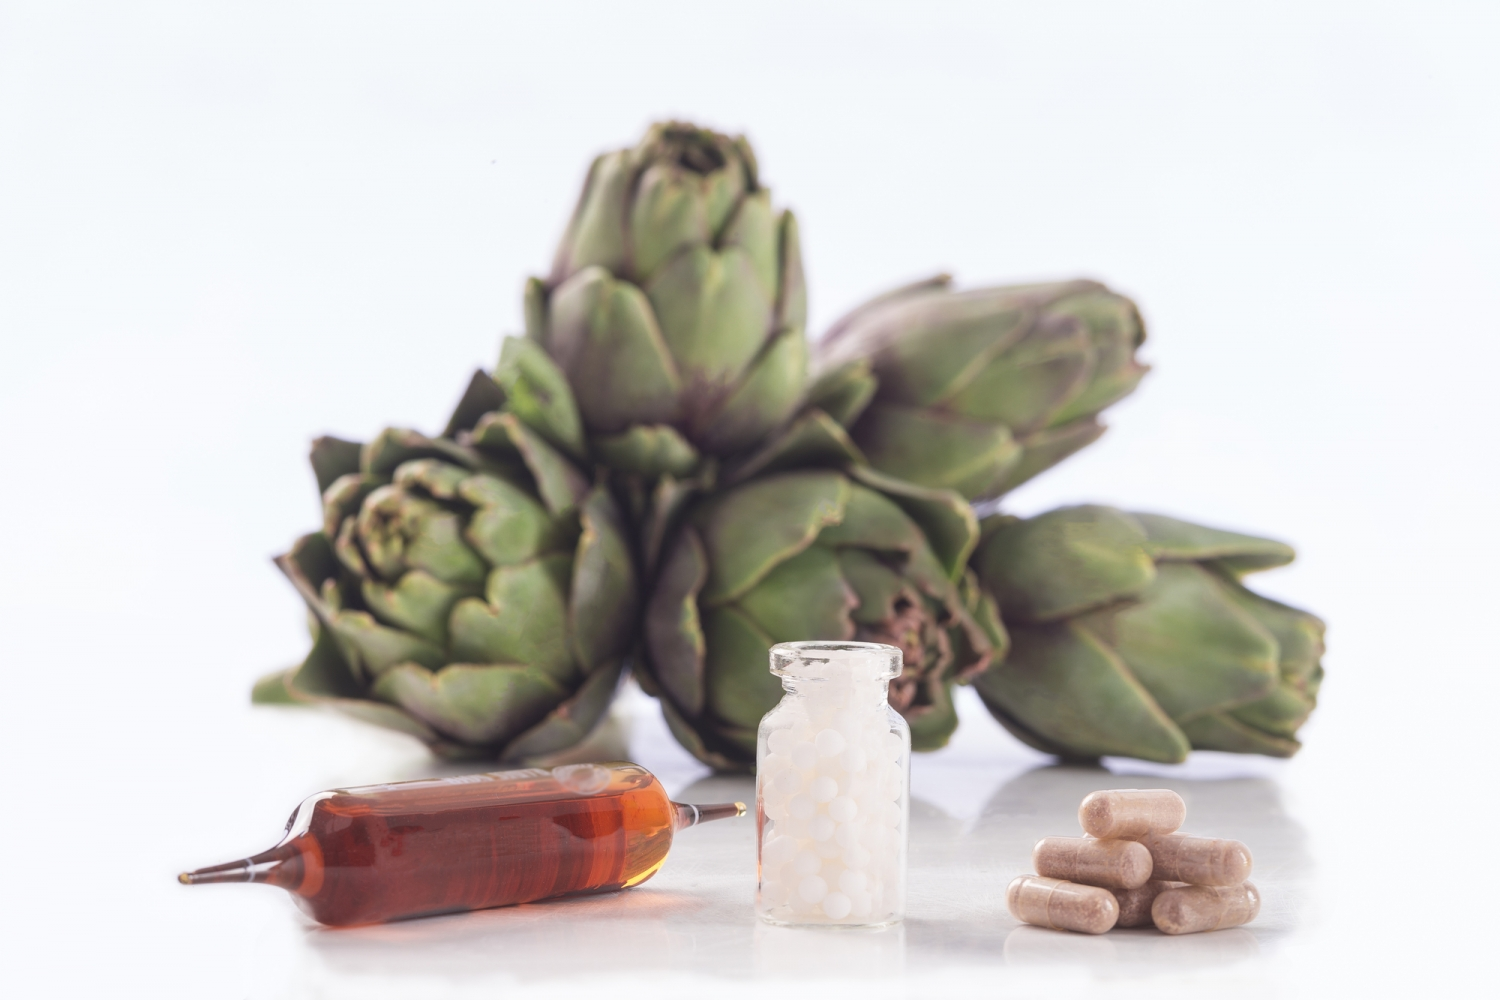 Artichoke leaf extract capsules. tablets, and ampoules